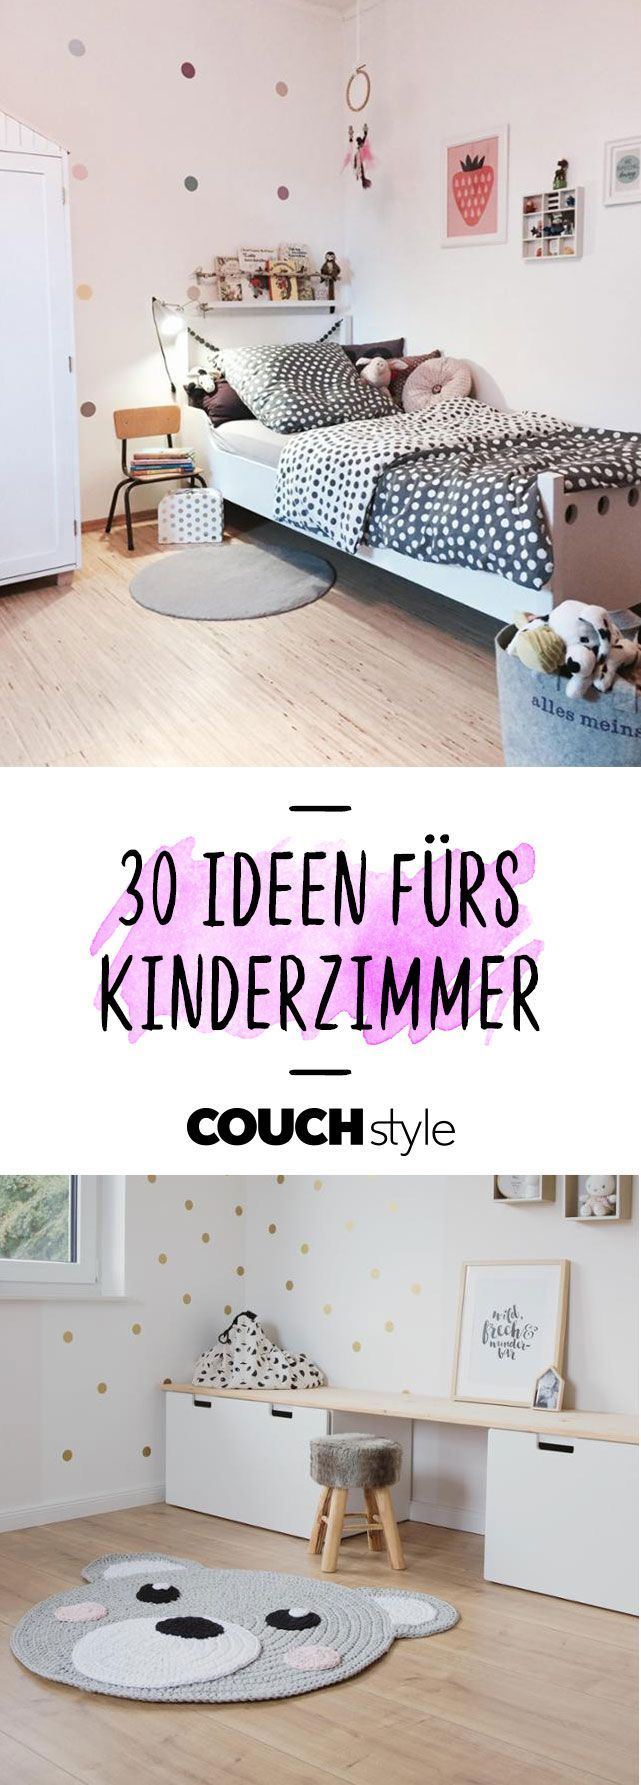 kinderzimmer gem tlich einrichten so geht 39 s kind kinder zimmer kinderzimmer und. Black Bedroom Furniture Sets. Home Design Ideas